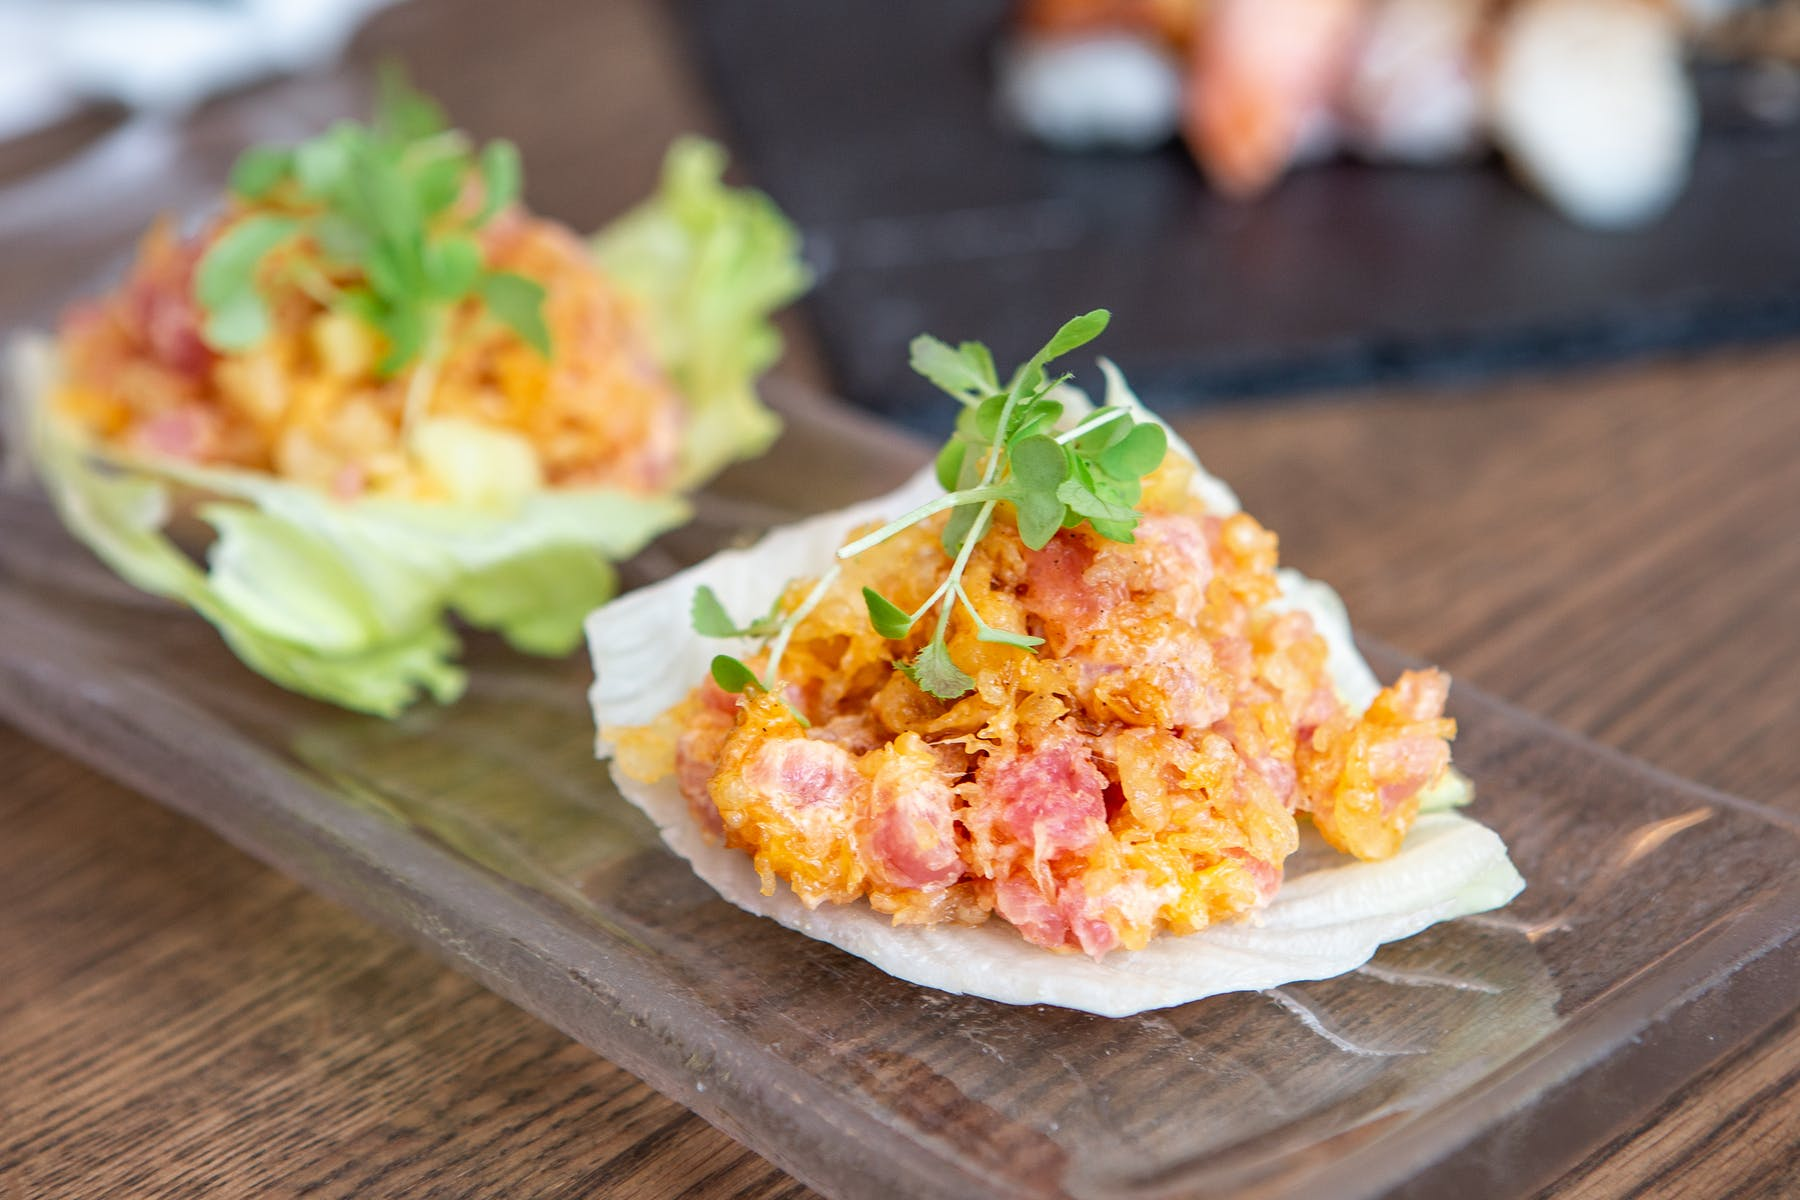 Spicy Tuna Lettuce Wraps - Fuji at WoC - Quincy, MA